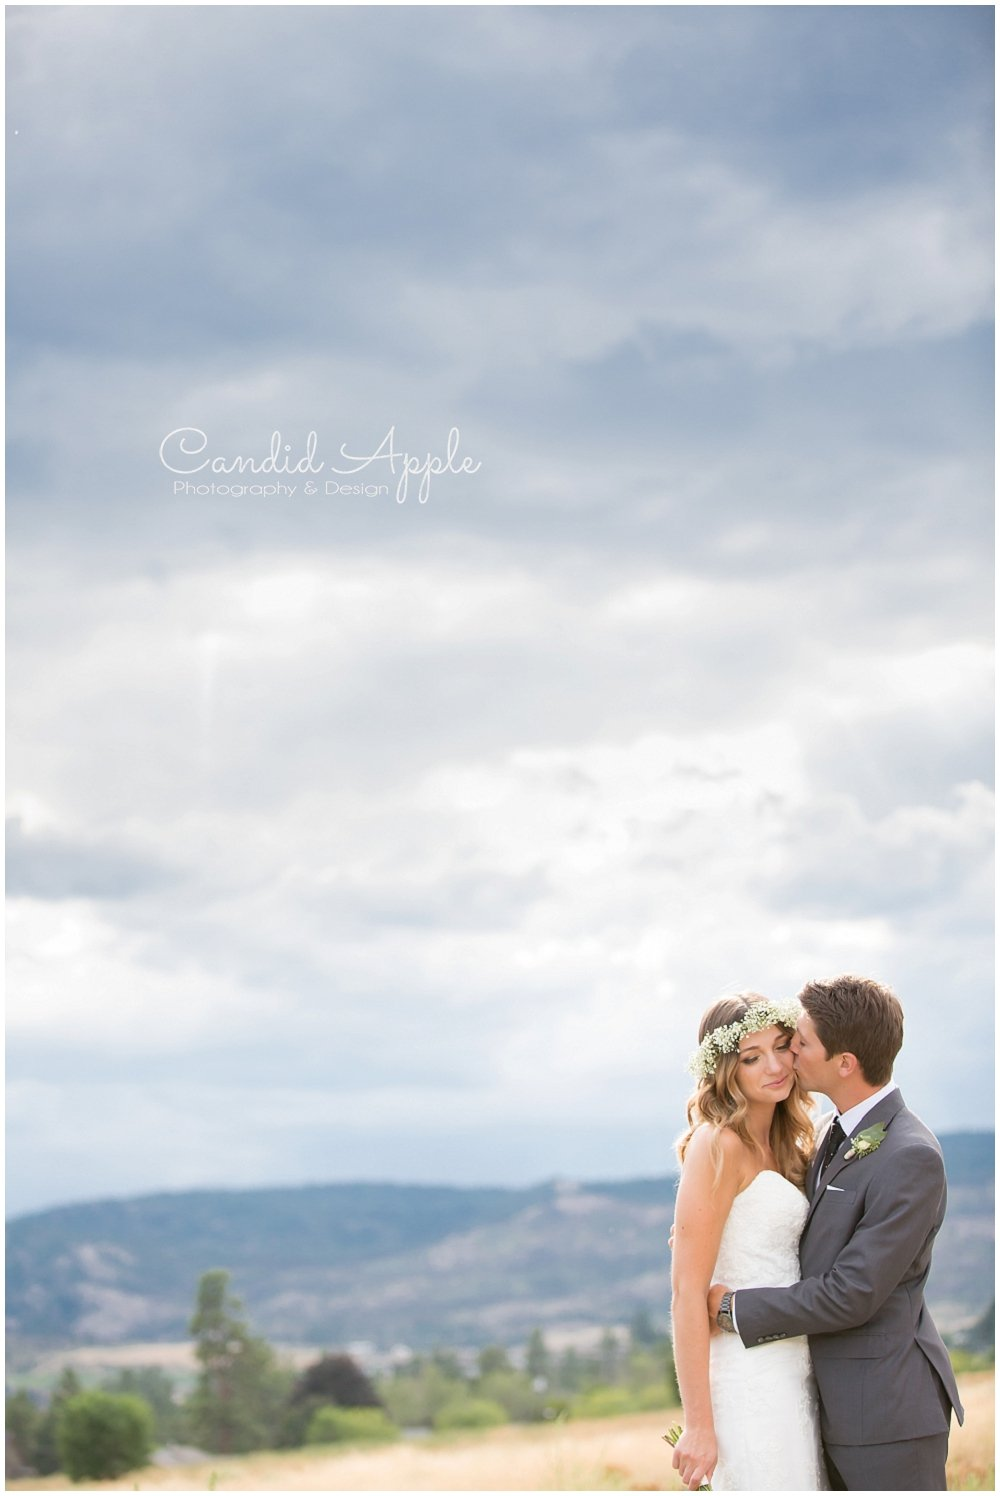 Sanctuary_Garden_West_Kelowna_Candid_Apple_Wedding_Photography_0061